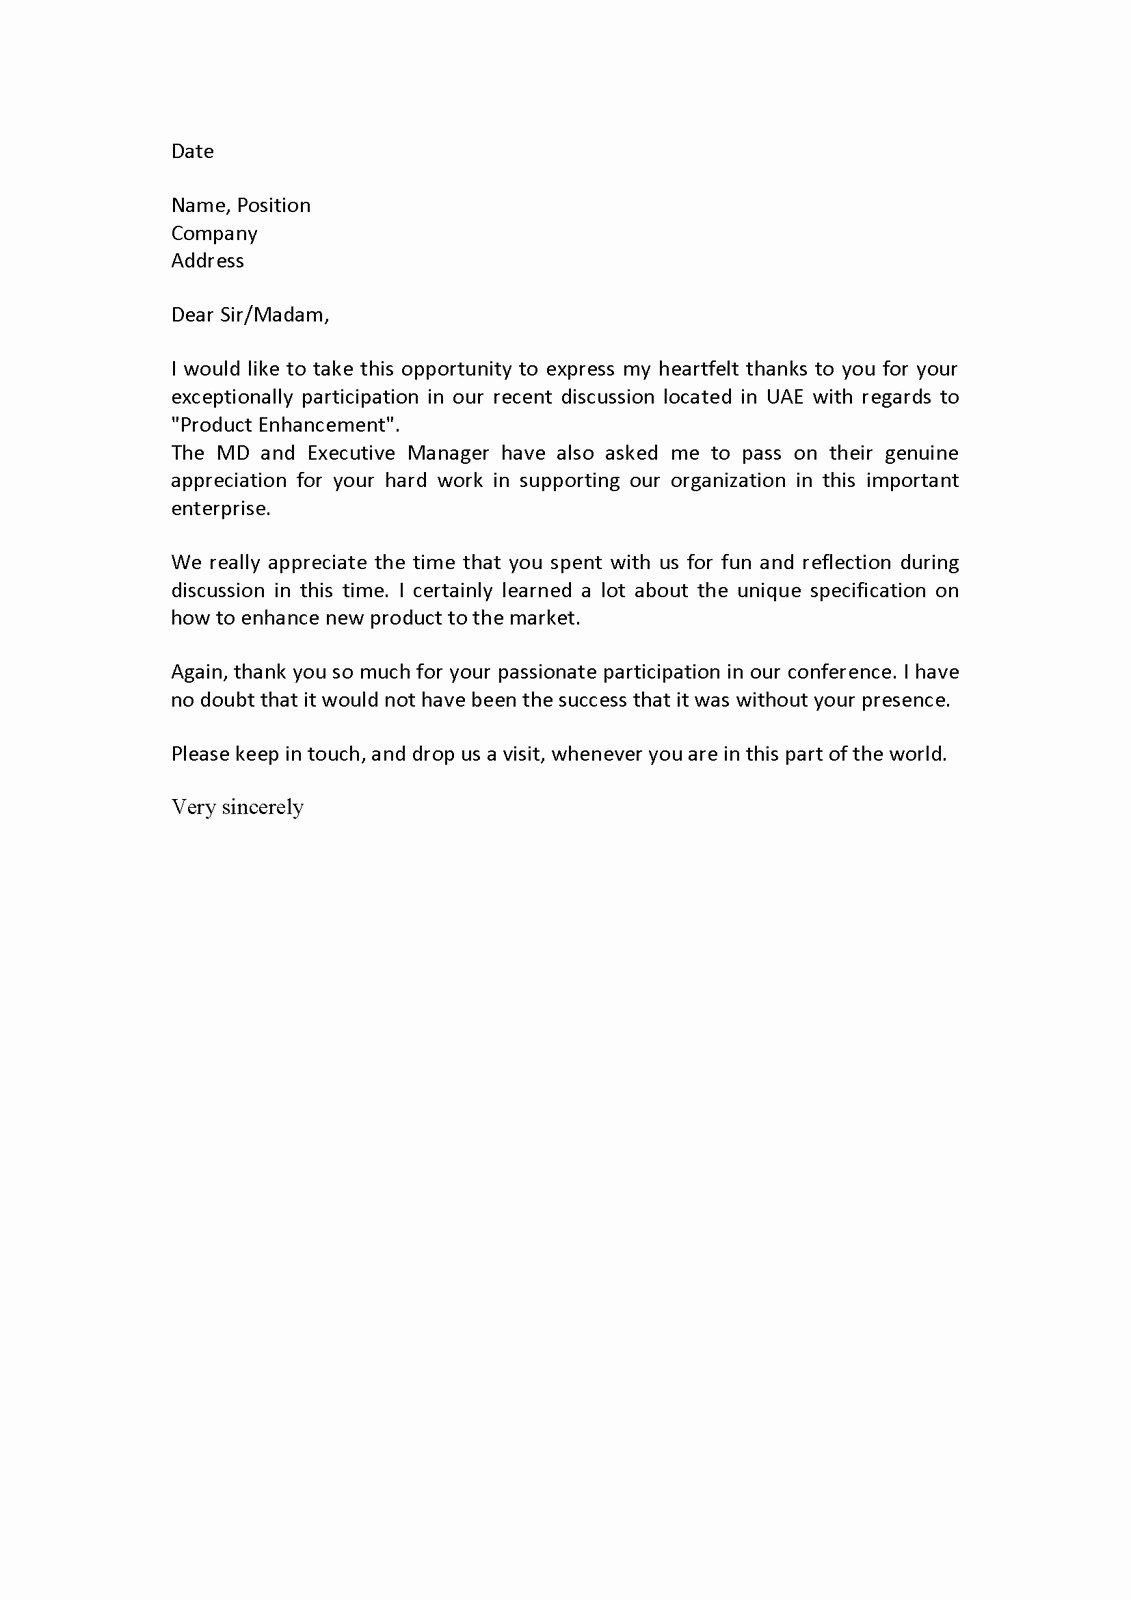 Letter Of Appreciation Template Inspirational Hr forms and Letters January 2011